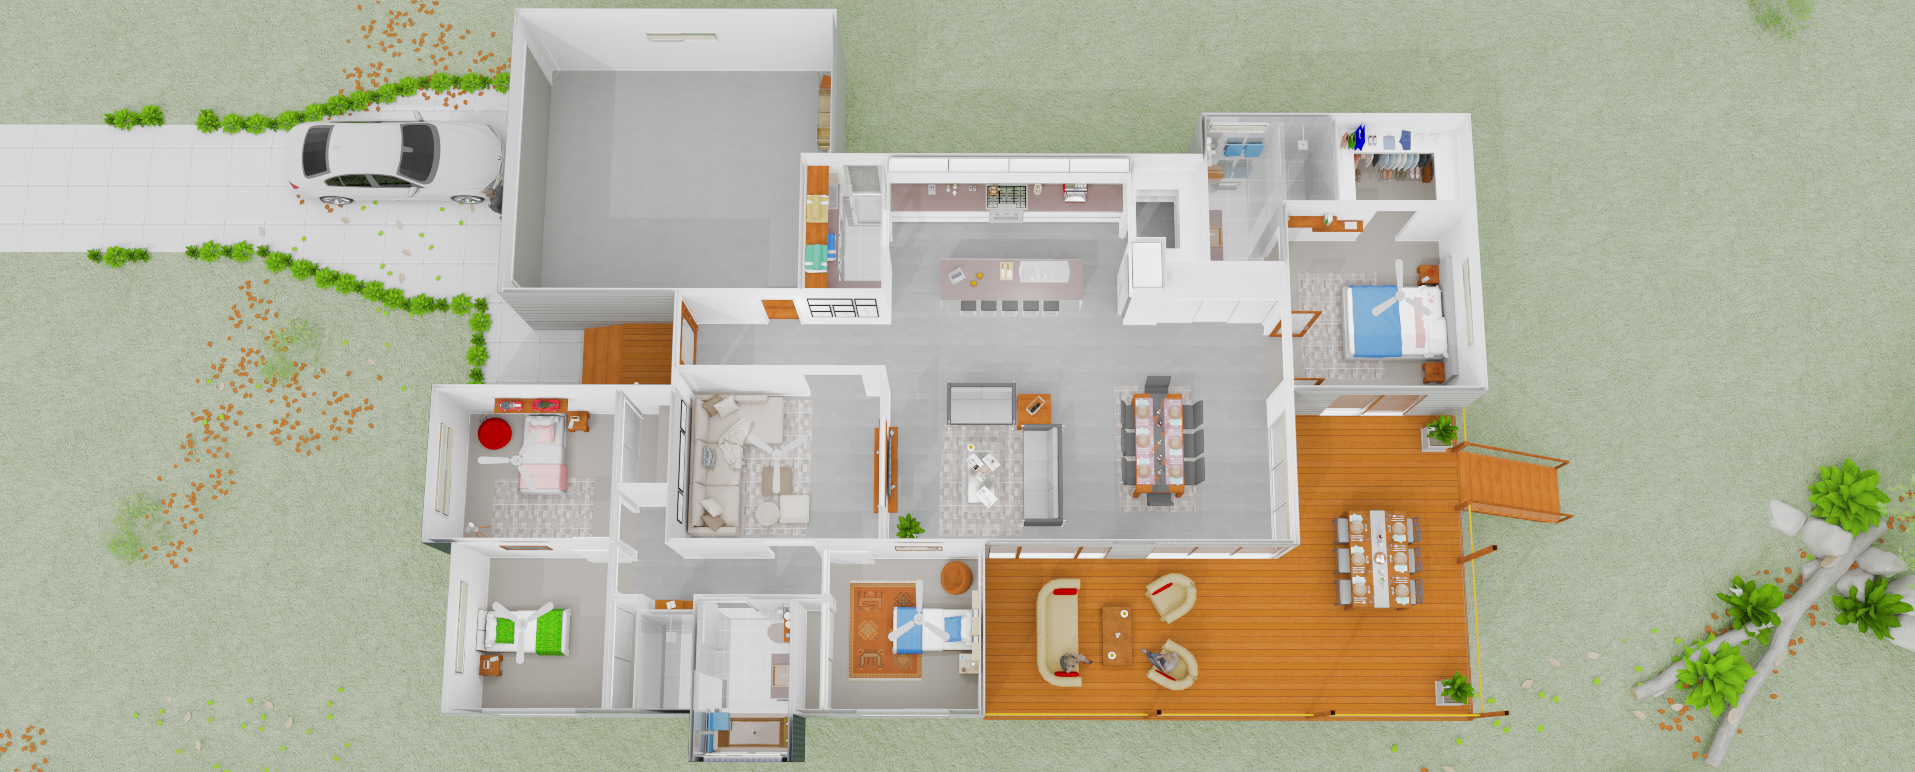 Buddina v1.1 floorplan